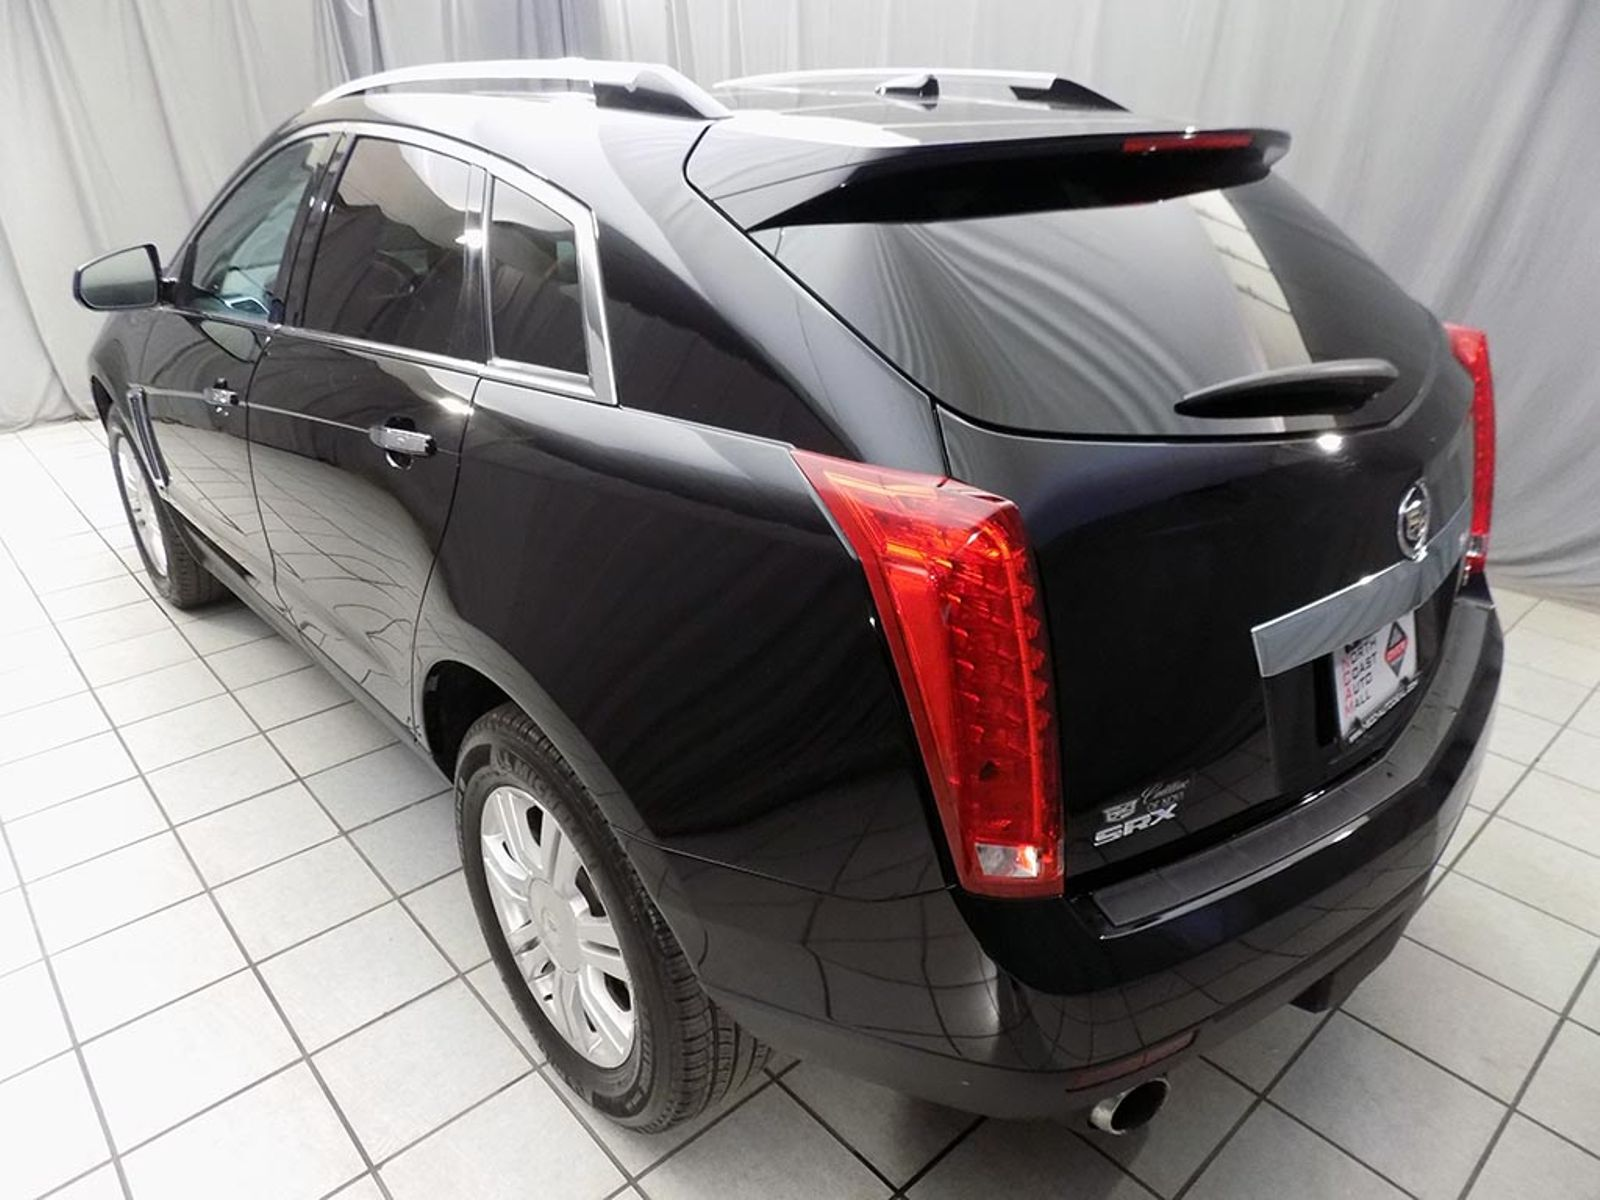 research large suv groovecar crystal tintcoat srx composite red cadillac